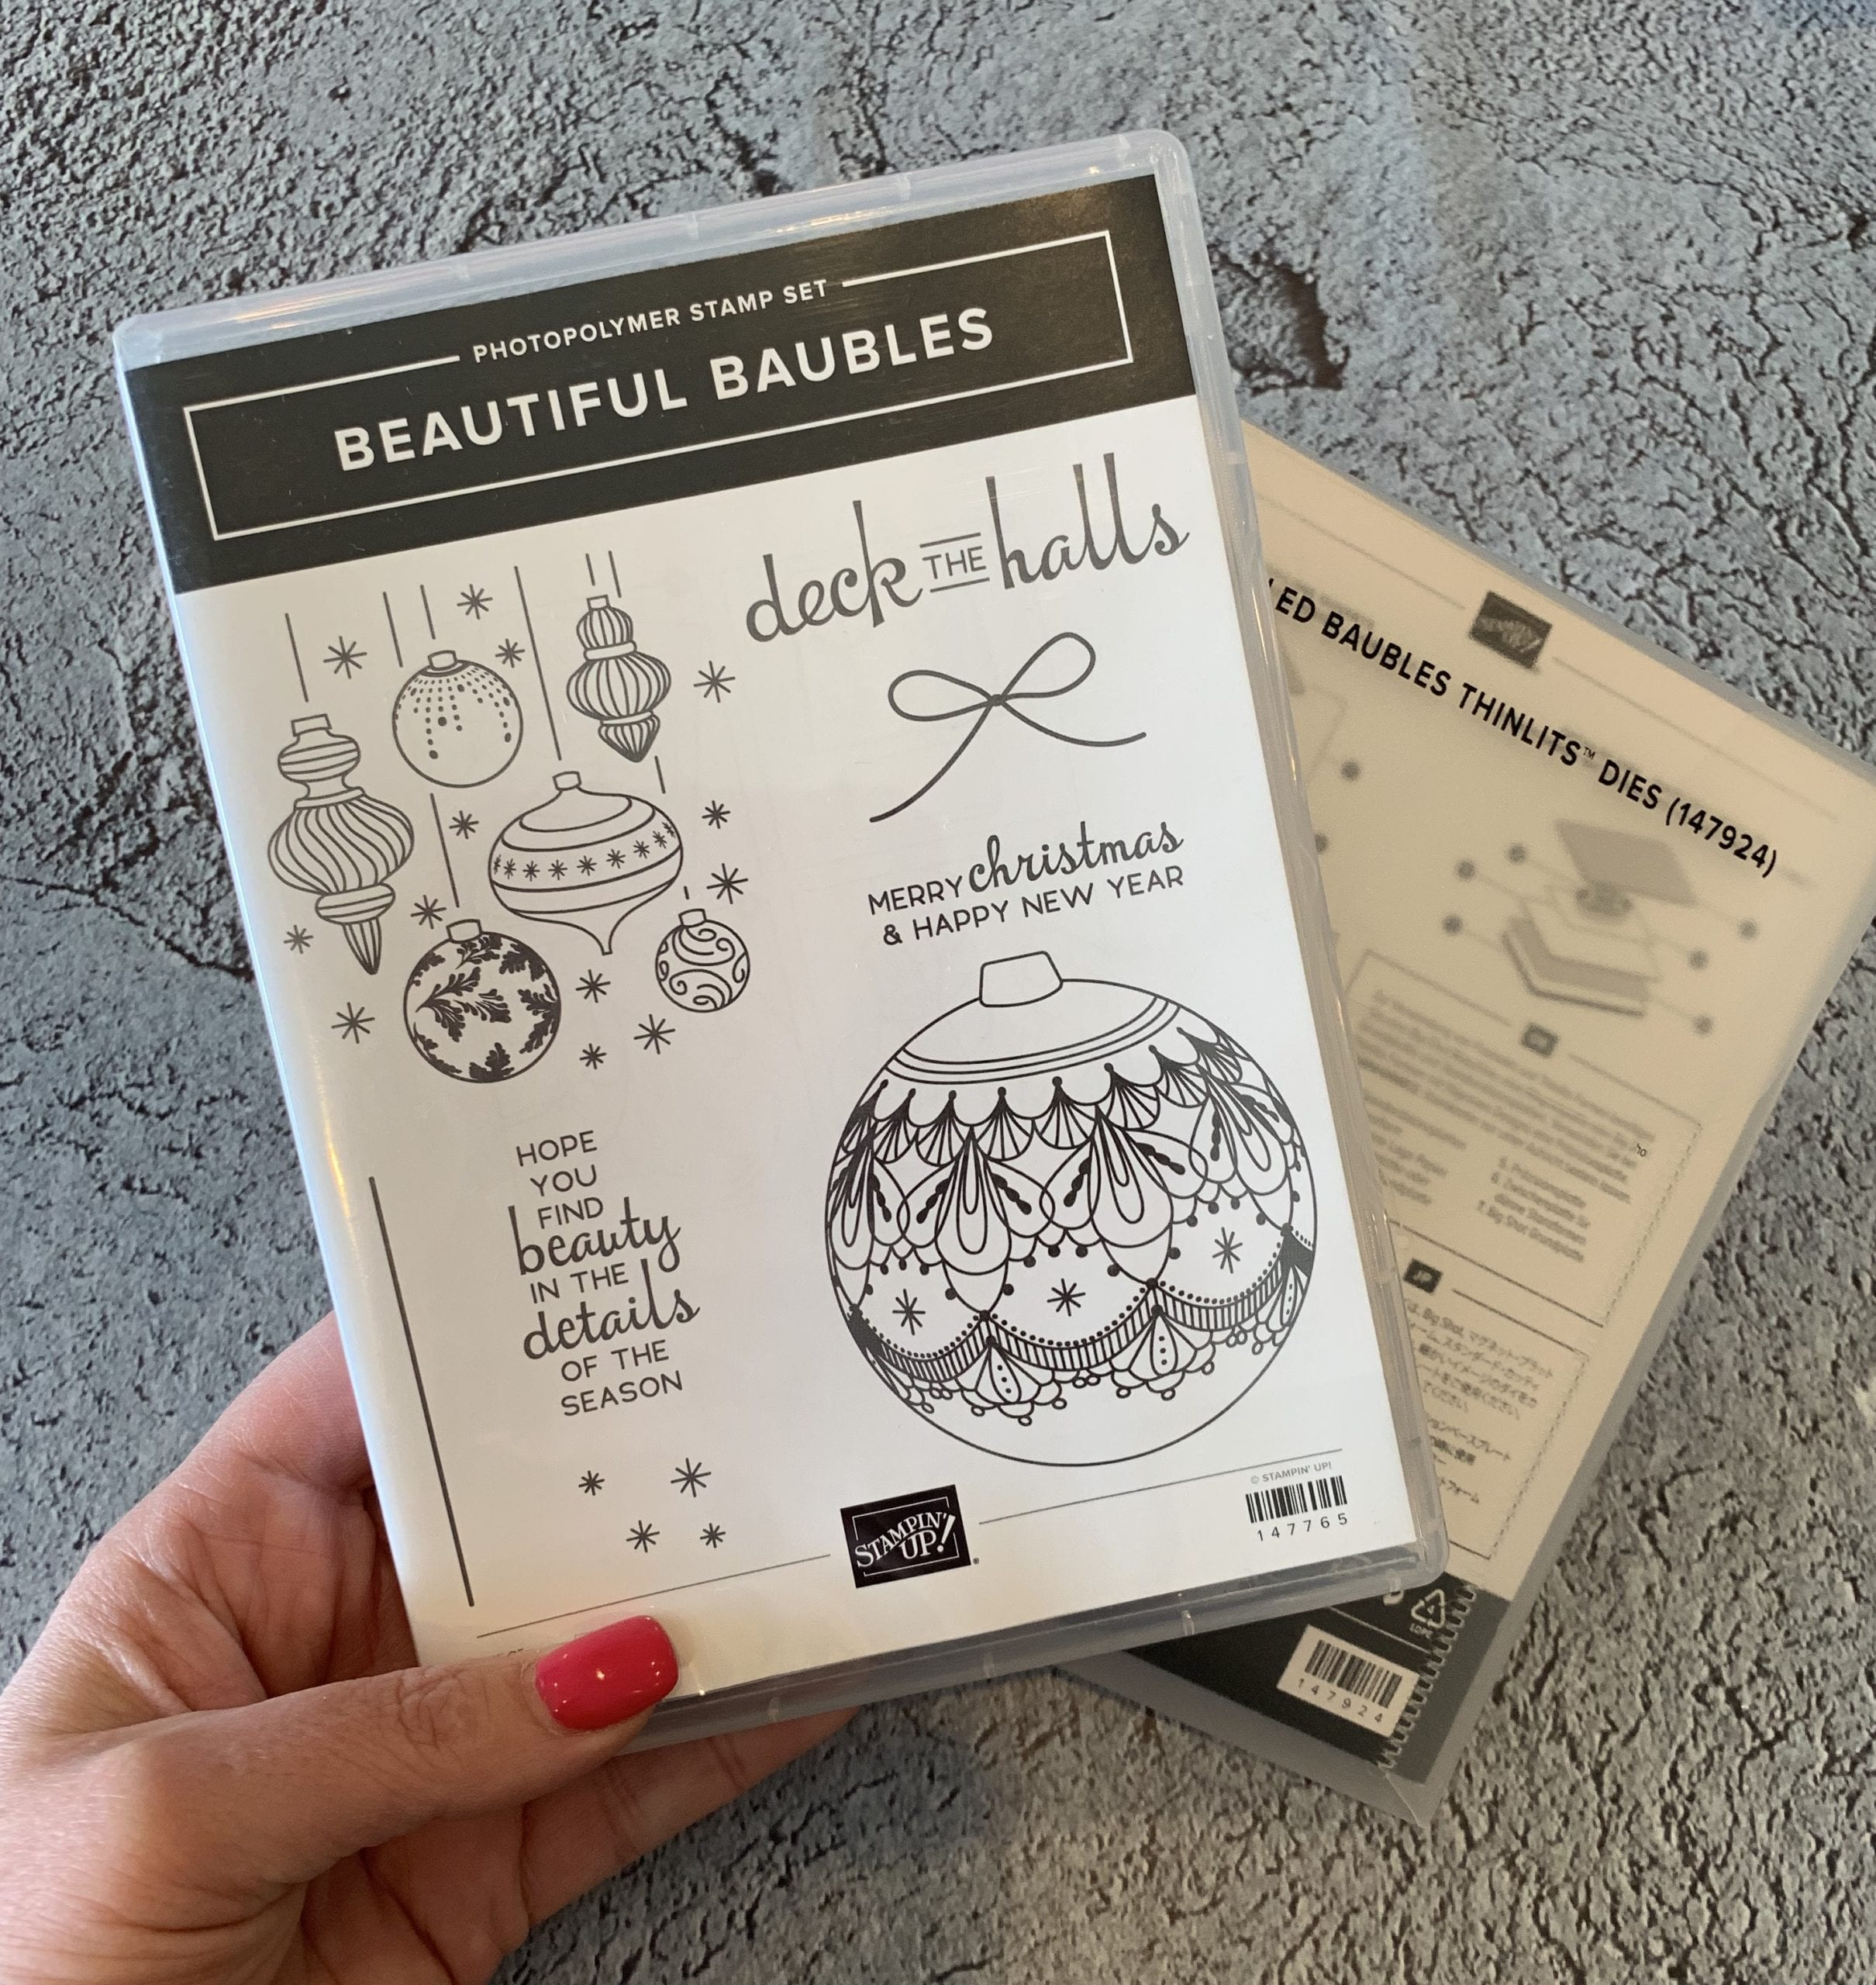 Stampin' Up!'s Online Extravaganza Promotion & My Pink Candy Plus Weekend Highlights!